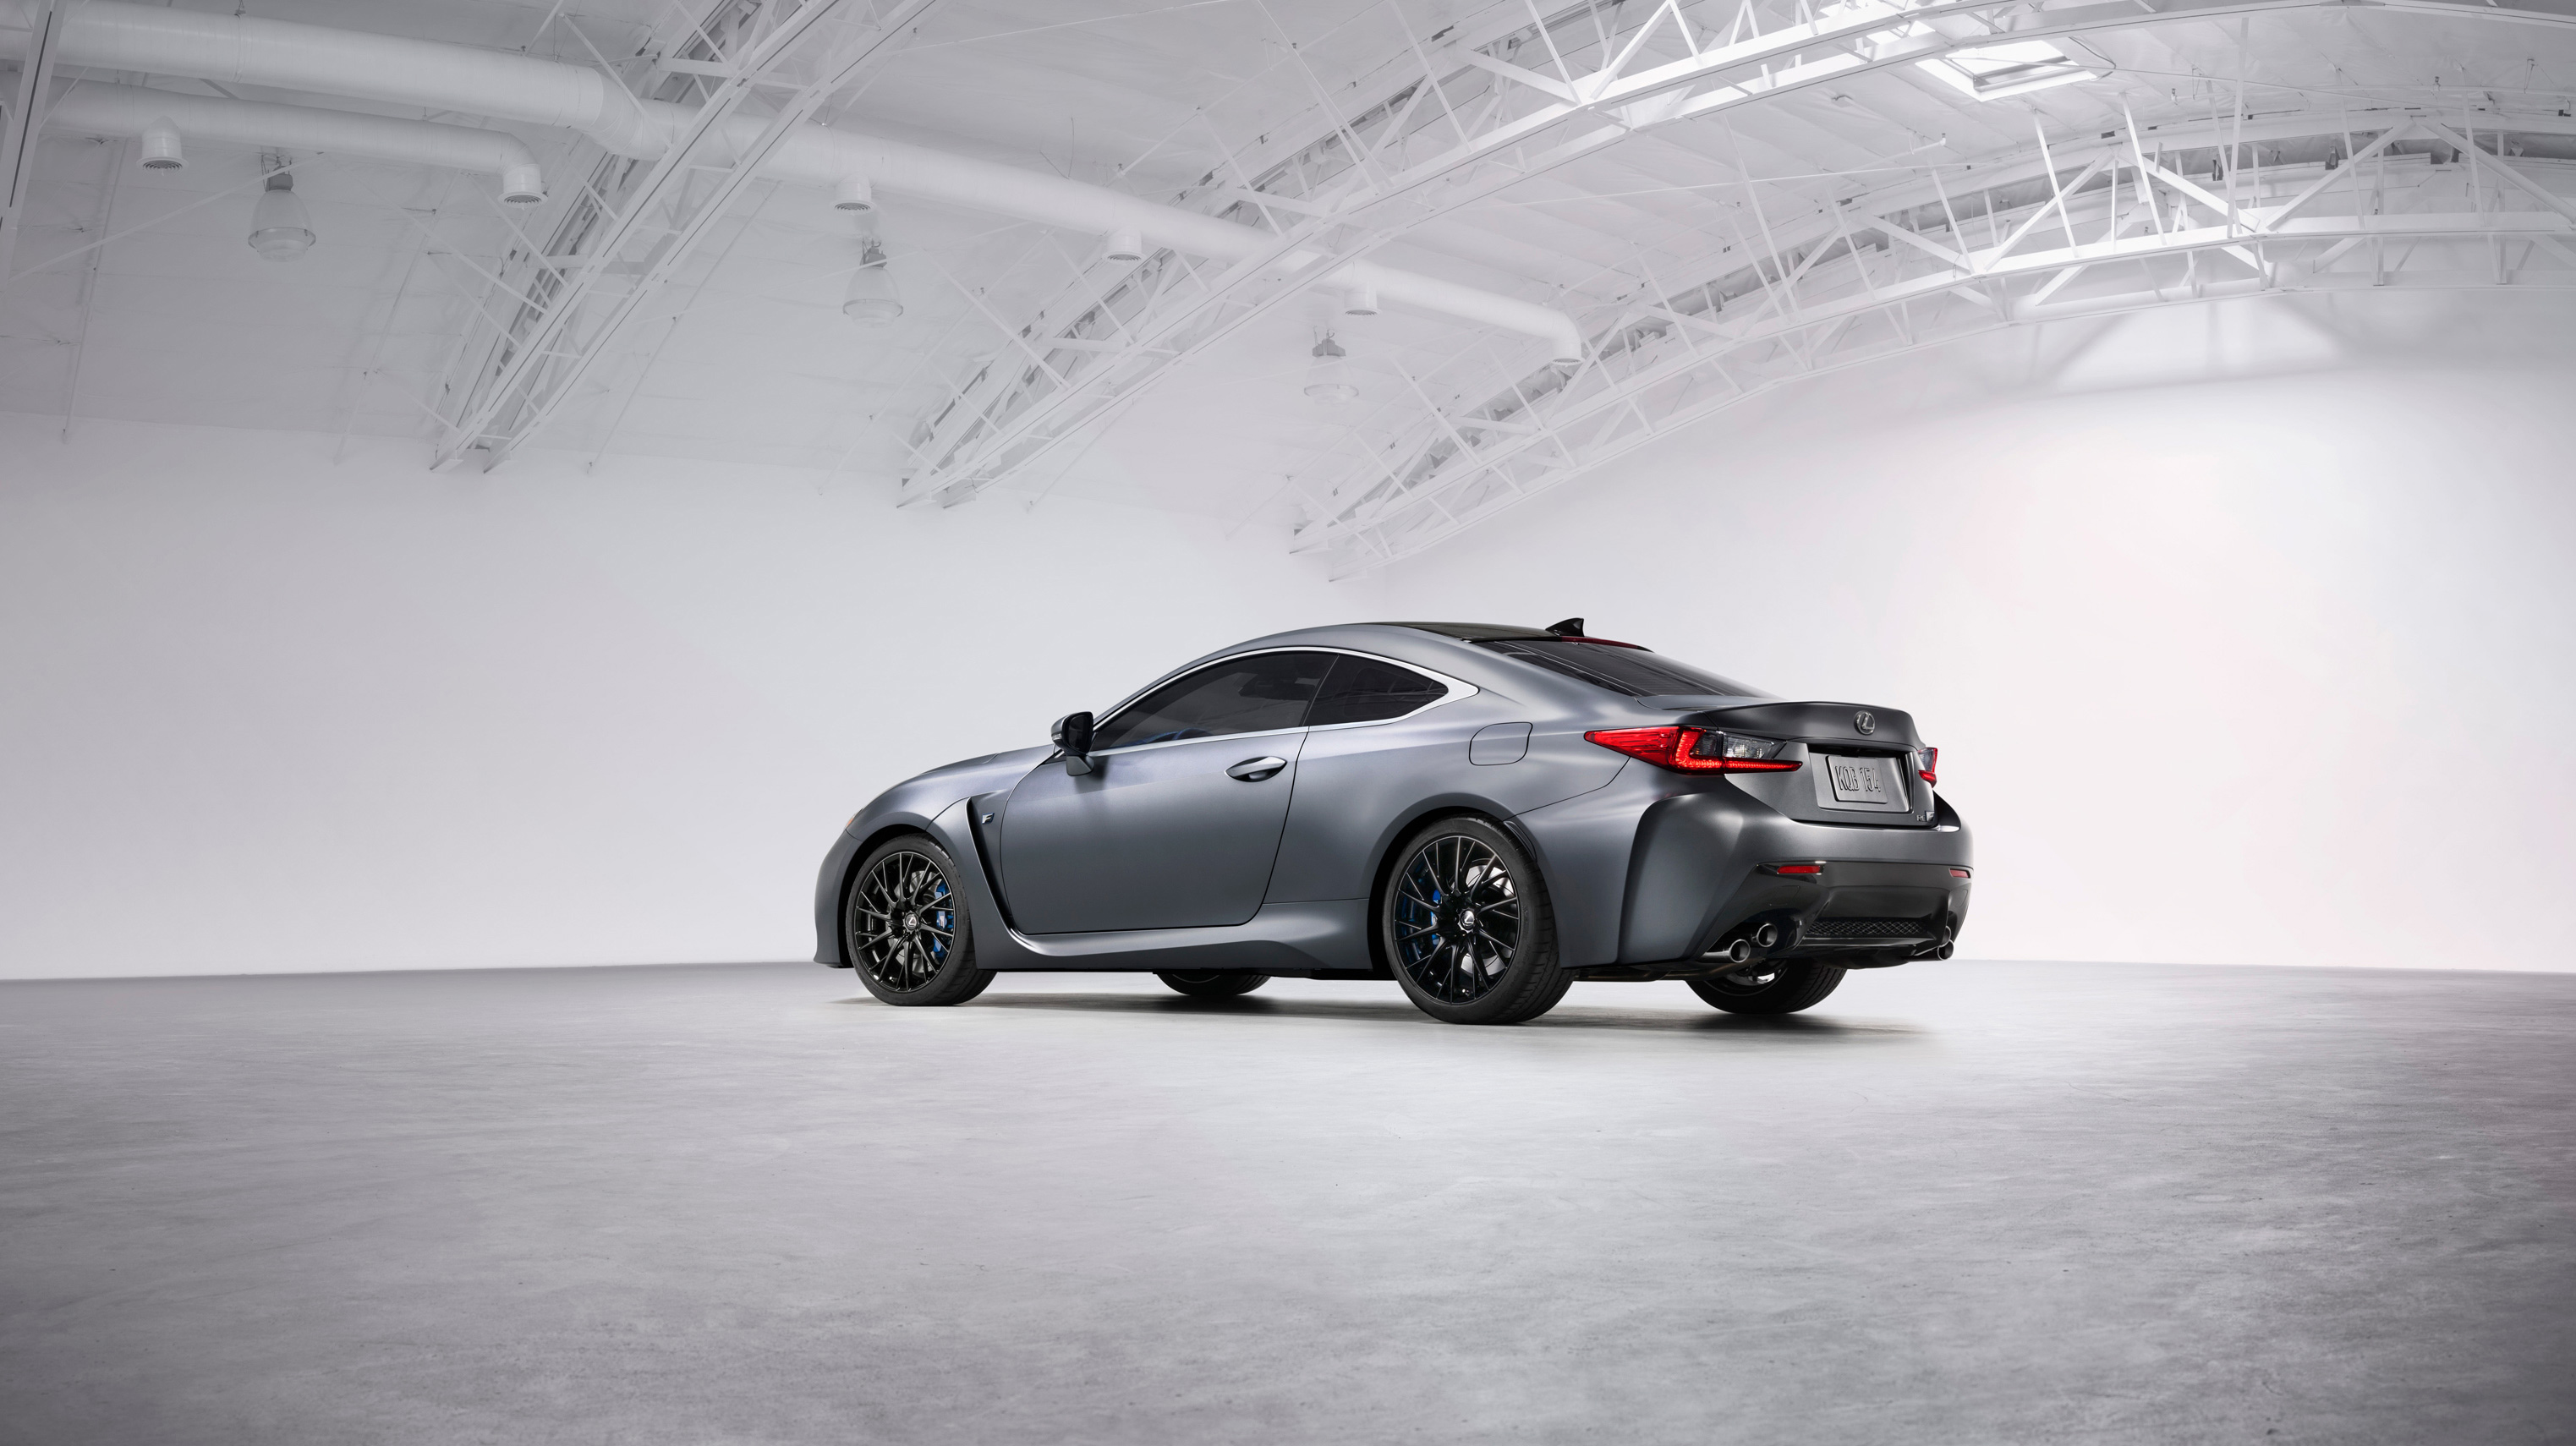 Lexus Rc F 2018 Hd Cars 4k Wallpapers Images Backgrounds Photos And Pictures